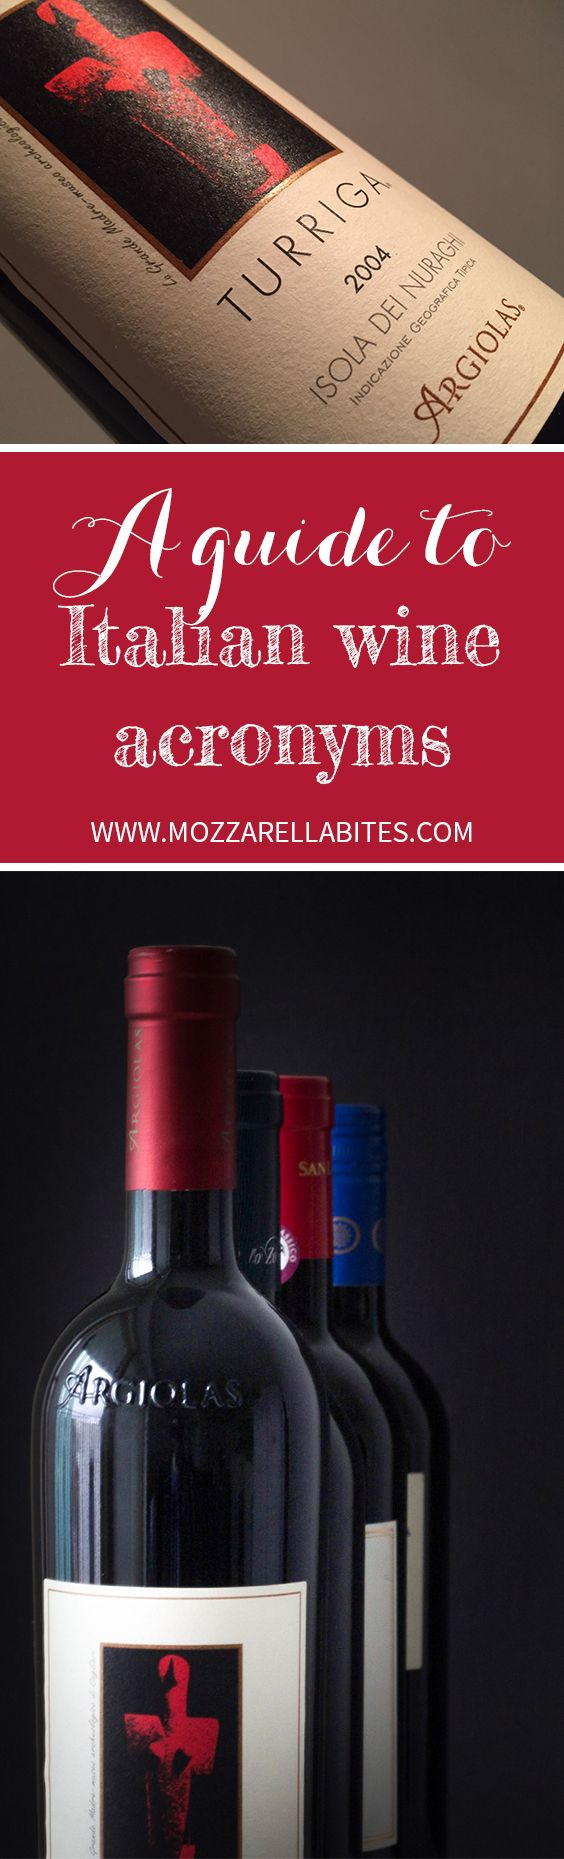 Find out how to read wine labels! Read our guide to the Italian wine acronyms!